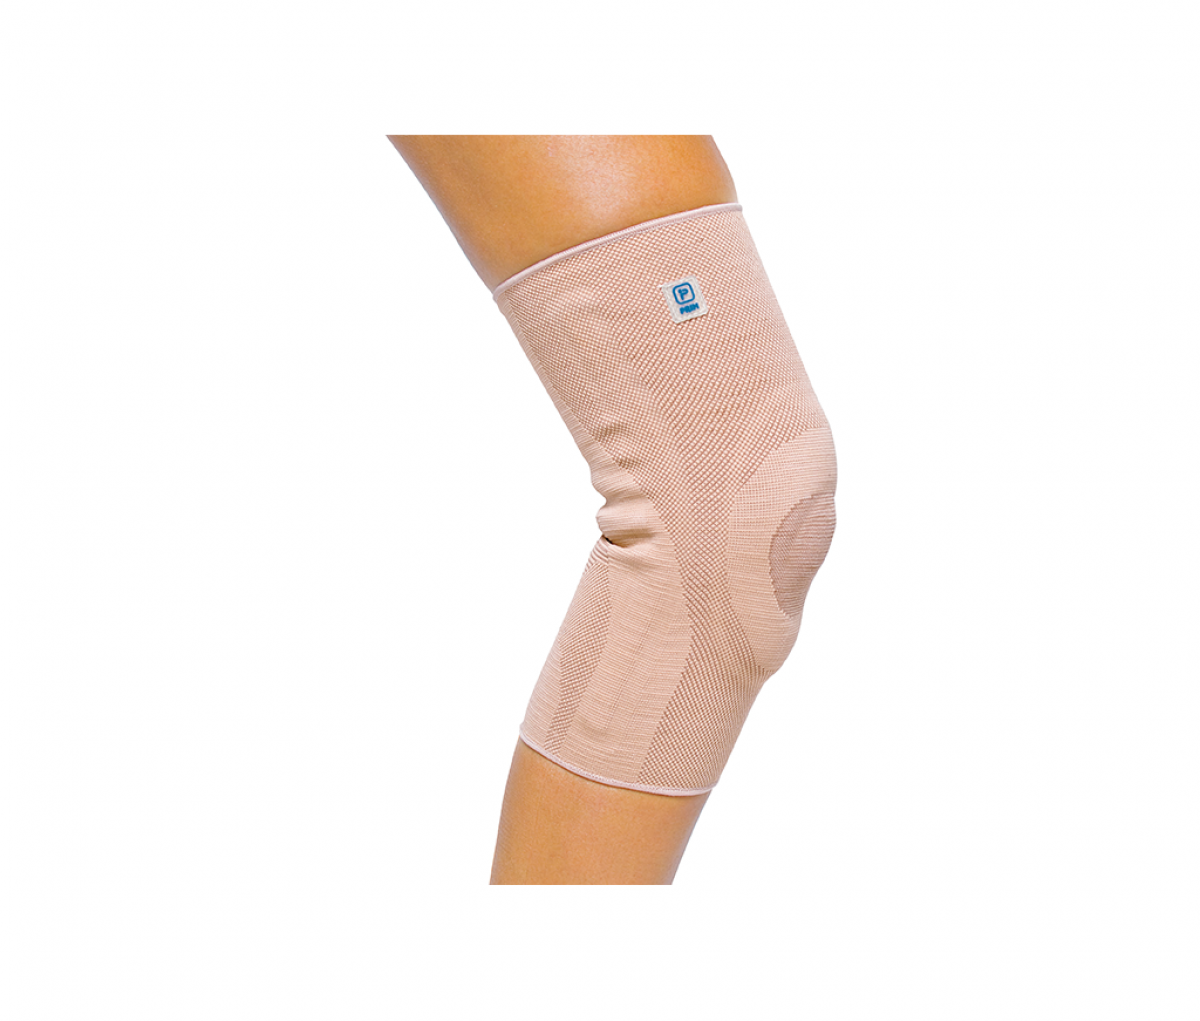 AQTIVO KNEE BRACE WITH SILICONE INSERT AND STAYS - L P701BG